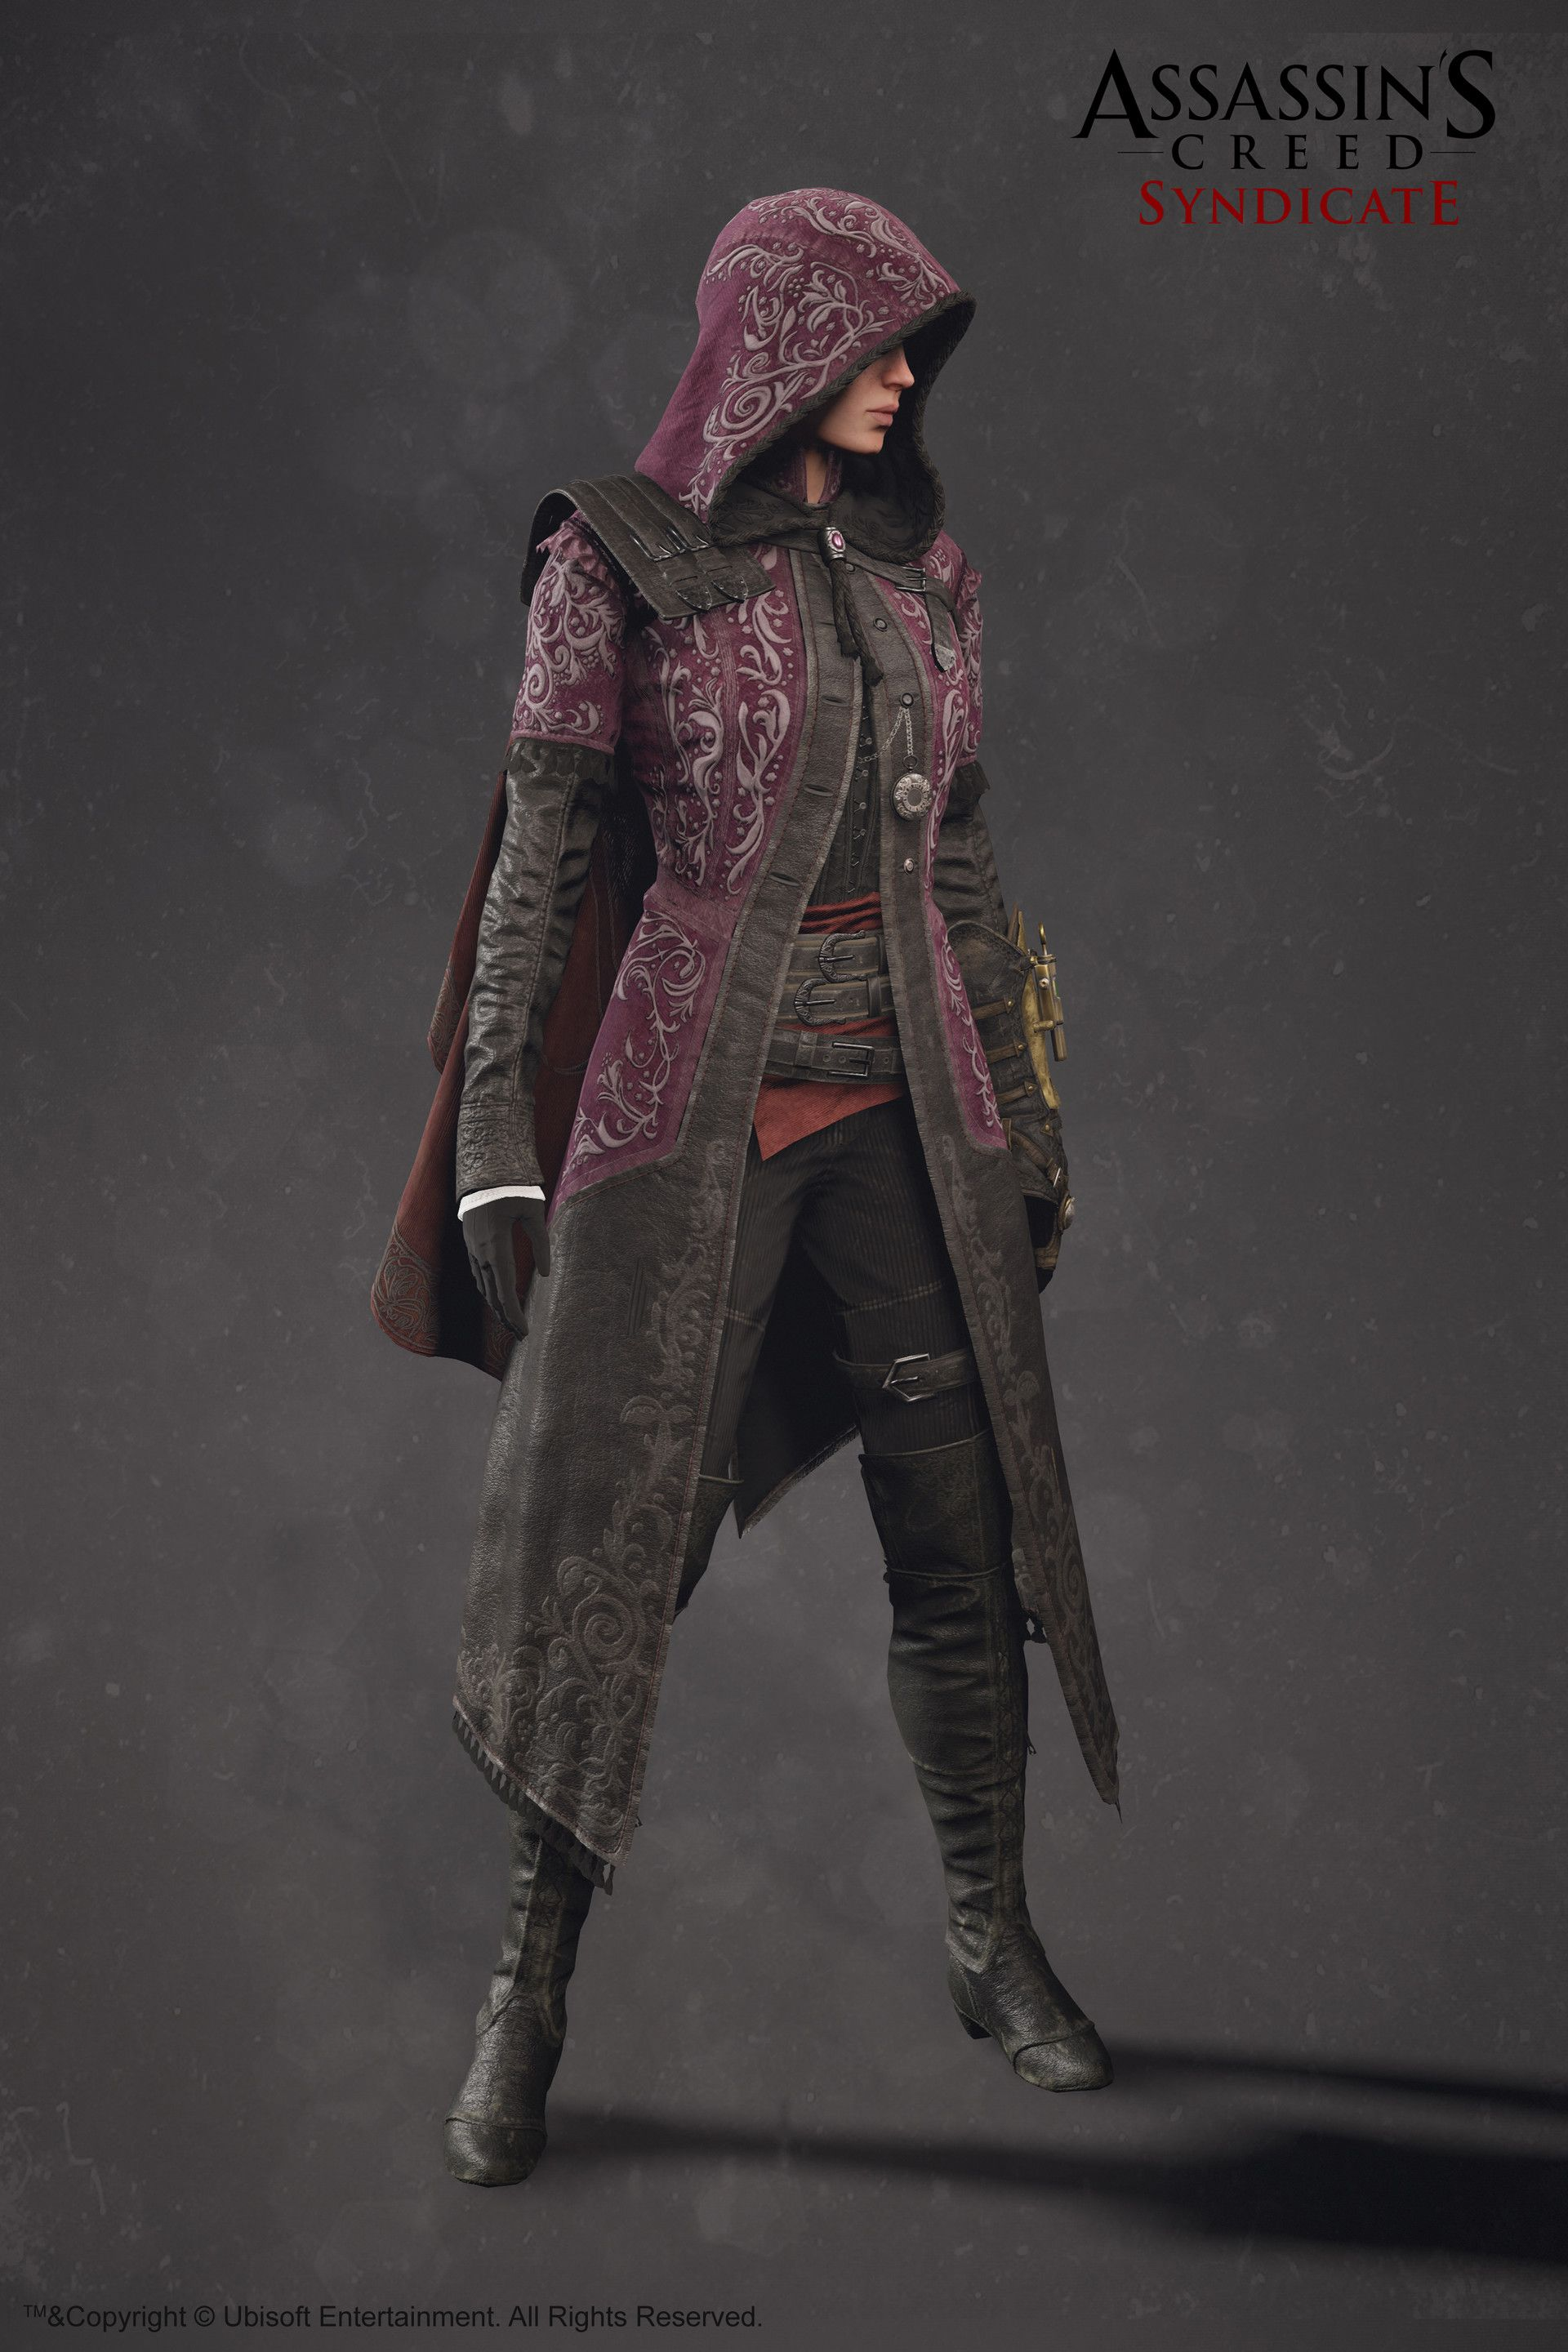 Evie Frye Outfit Assassin S Creed Syndicate Sabin Lalancette Assassins Creed Outfit Assassins Creed Assassins Creed Art